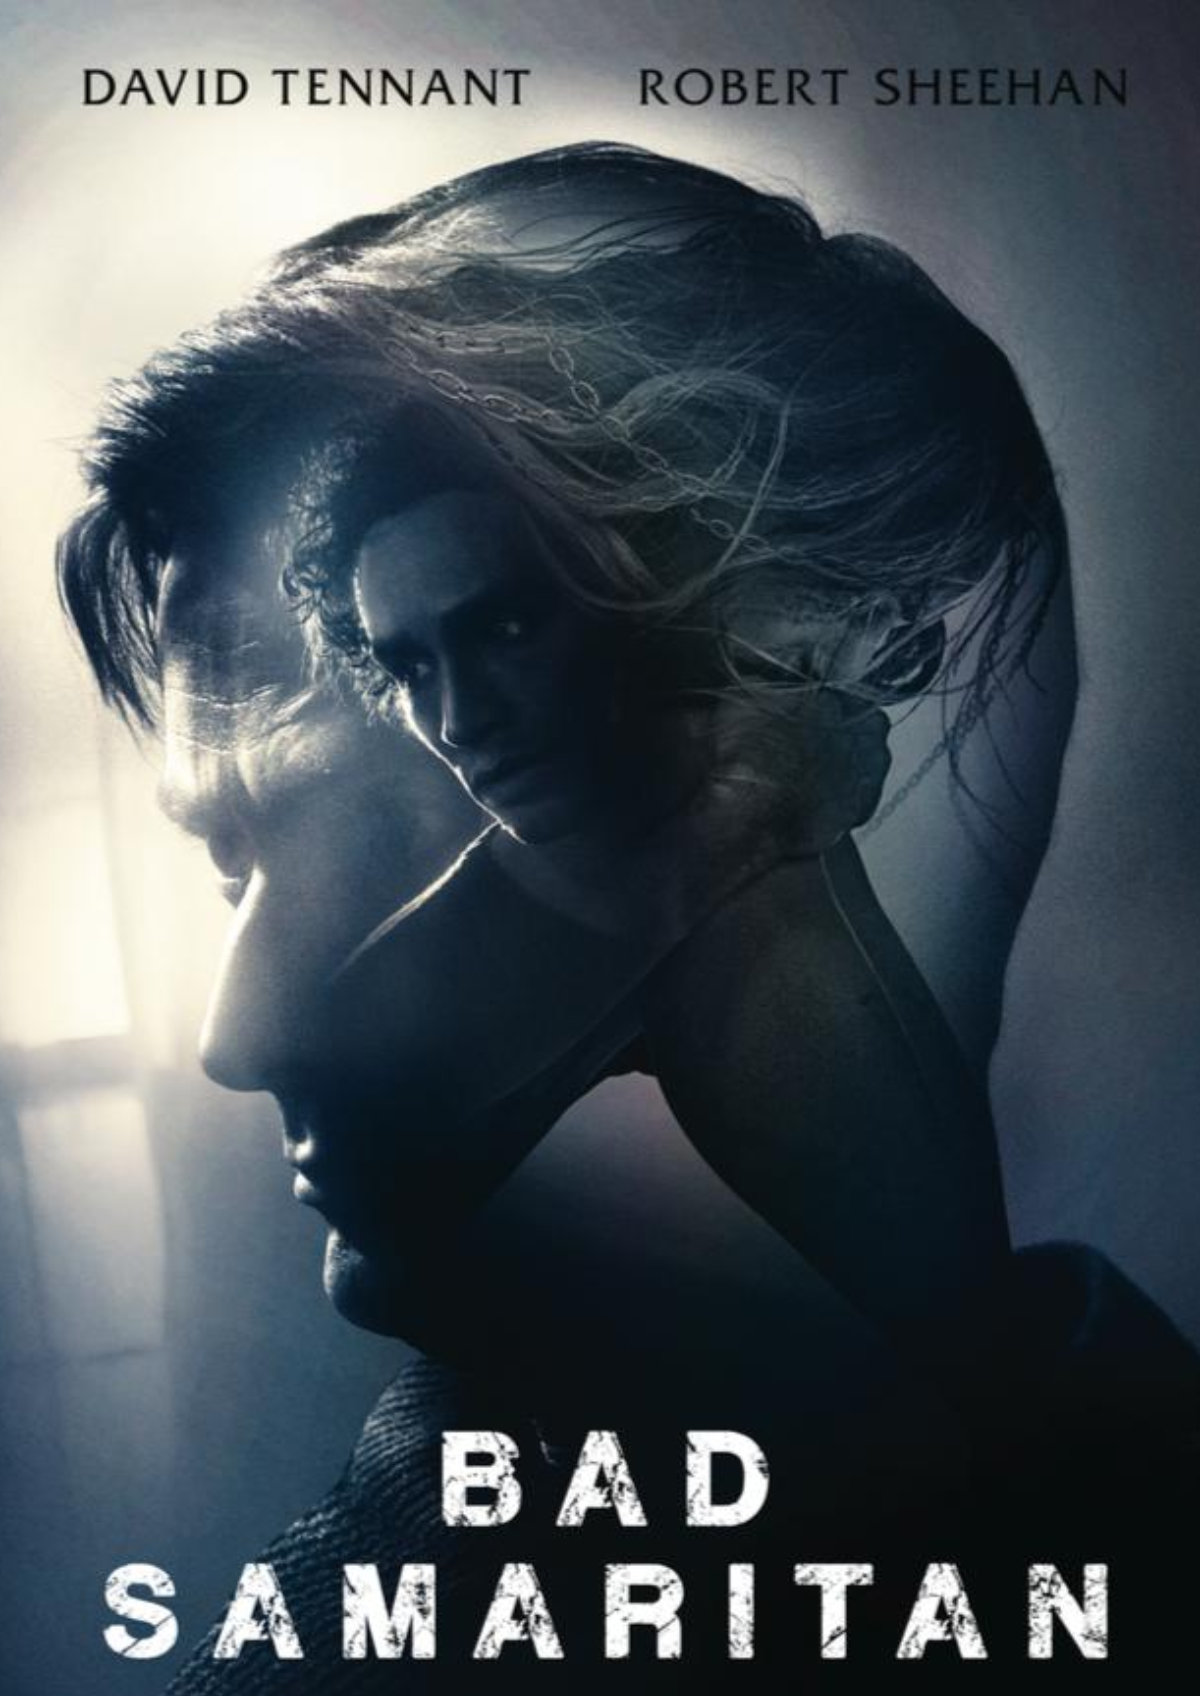 'Bad Samaritan' movie poster